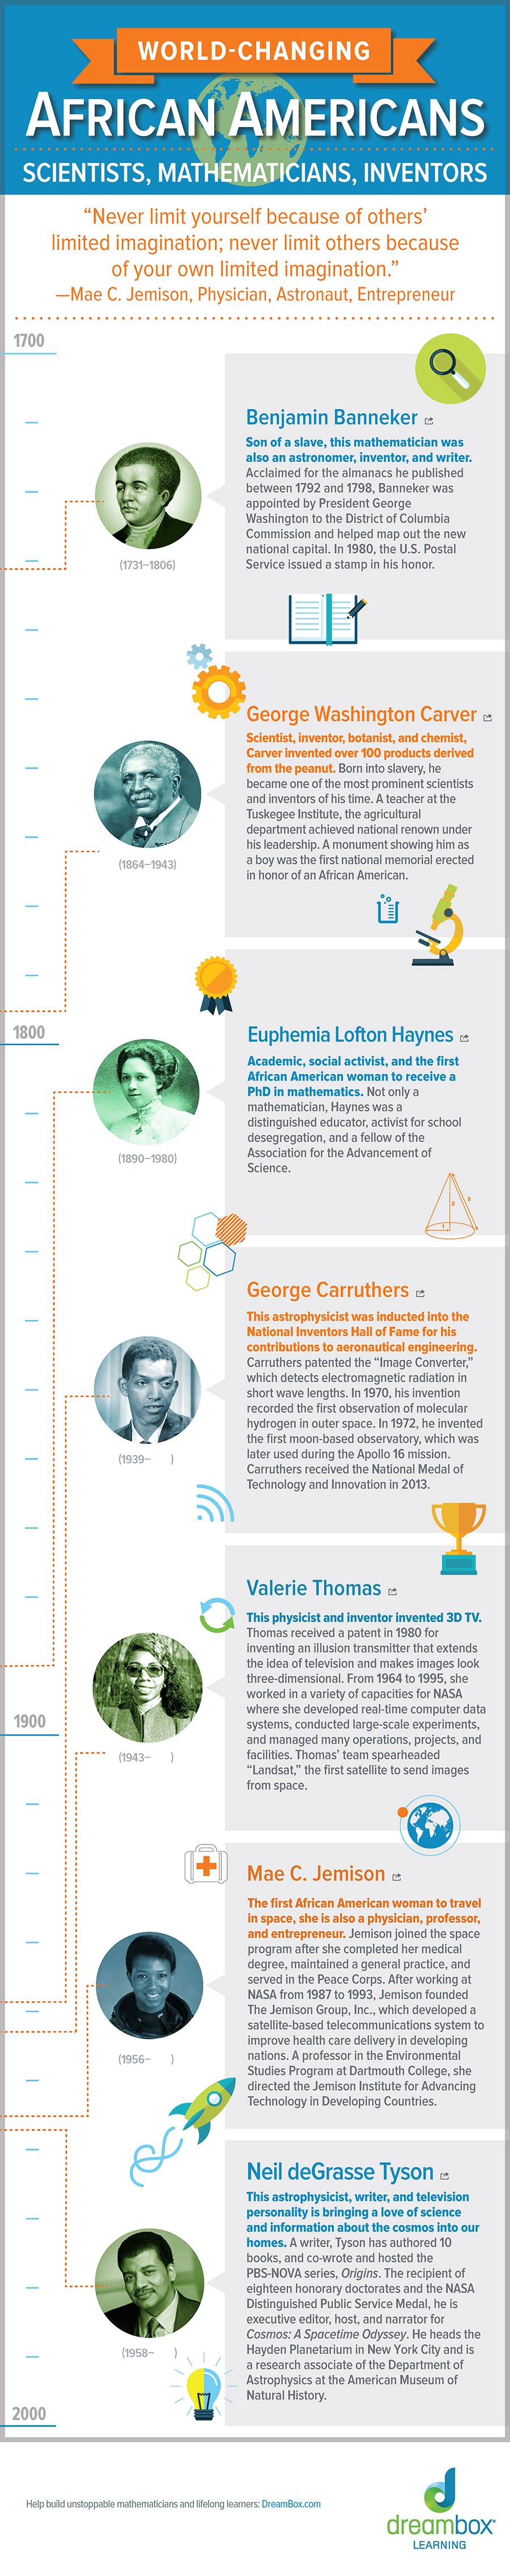 World-Changing African Americans in STEM - Black History Month- Infographic